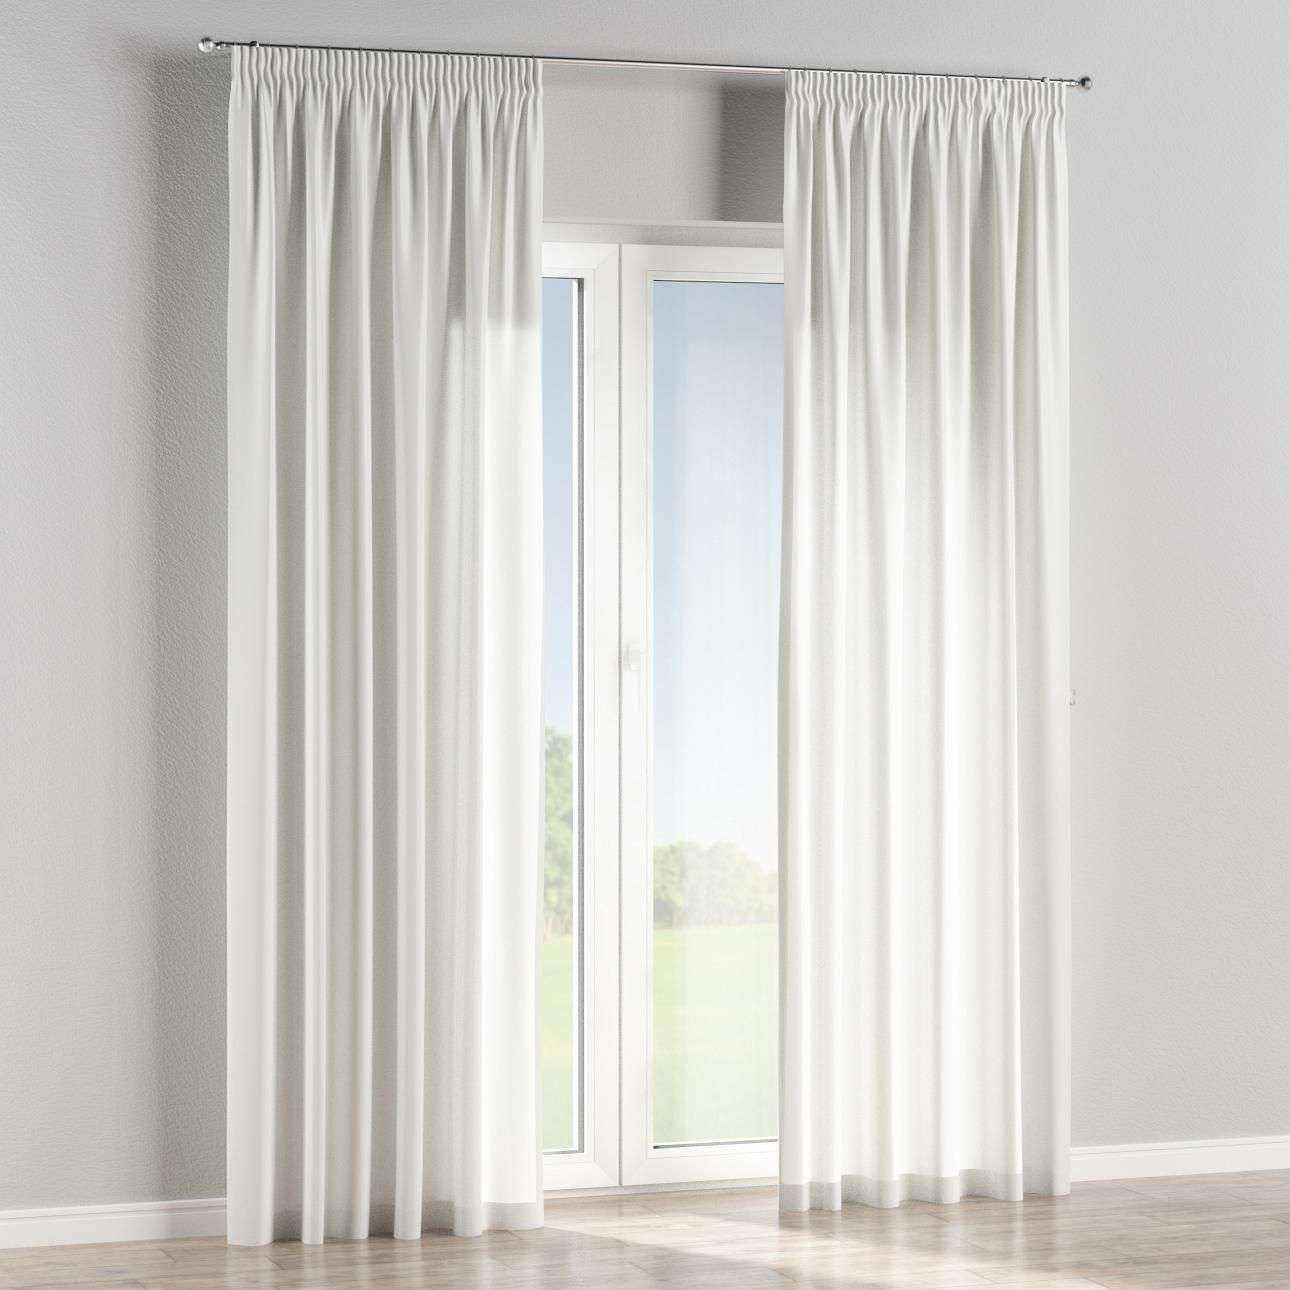 Pencil pleat curtains in collection Ashley, fabric: 137-45